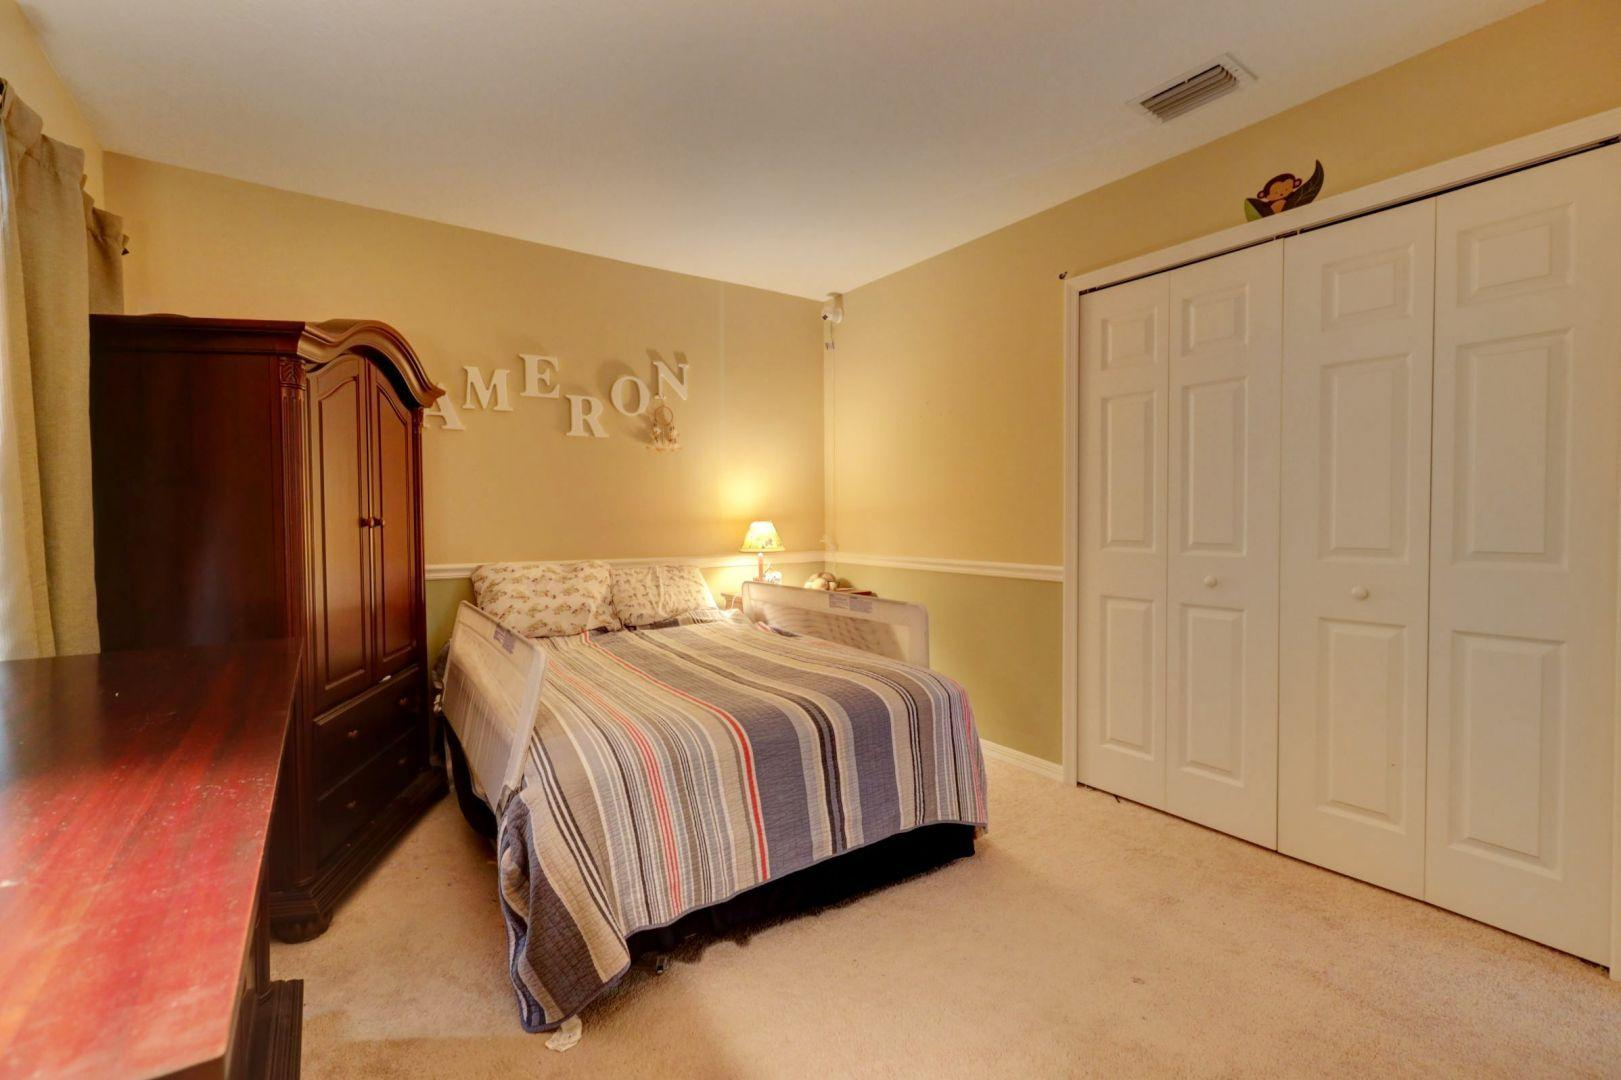 CAMBRIDGE TOWNHOMES HOMES FOR SALE